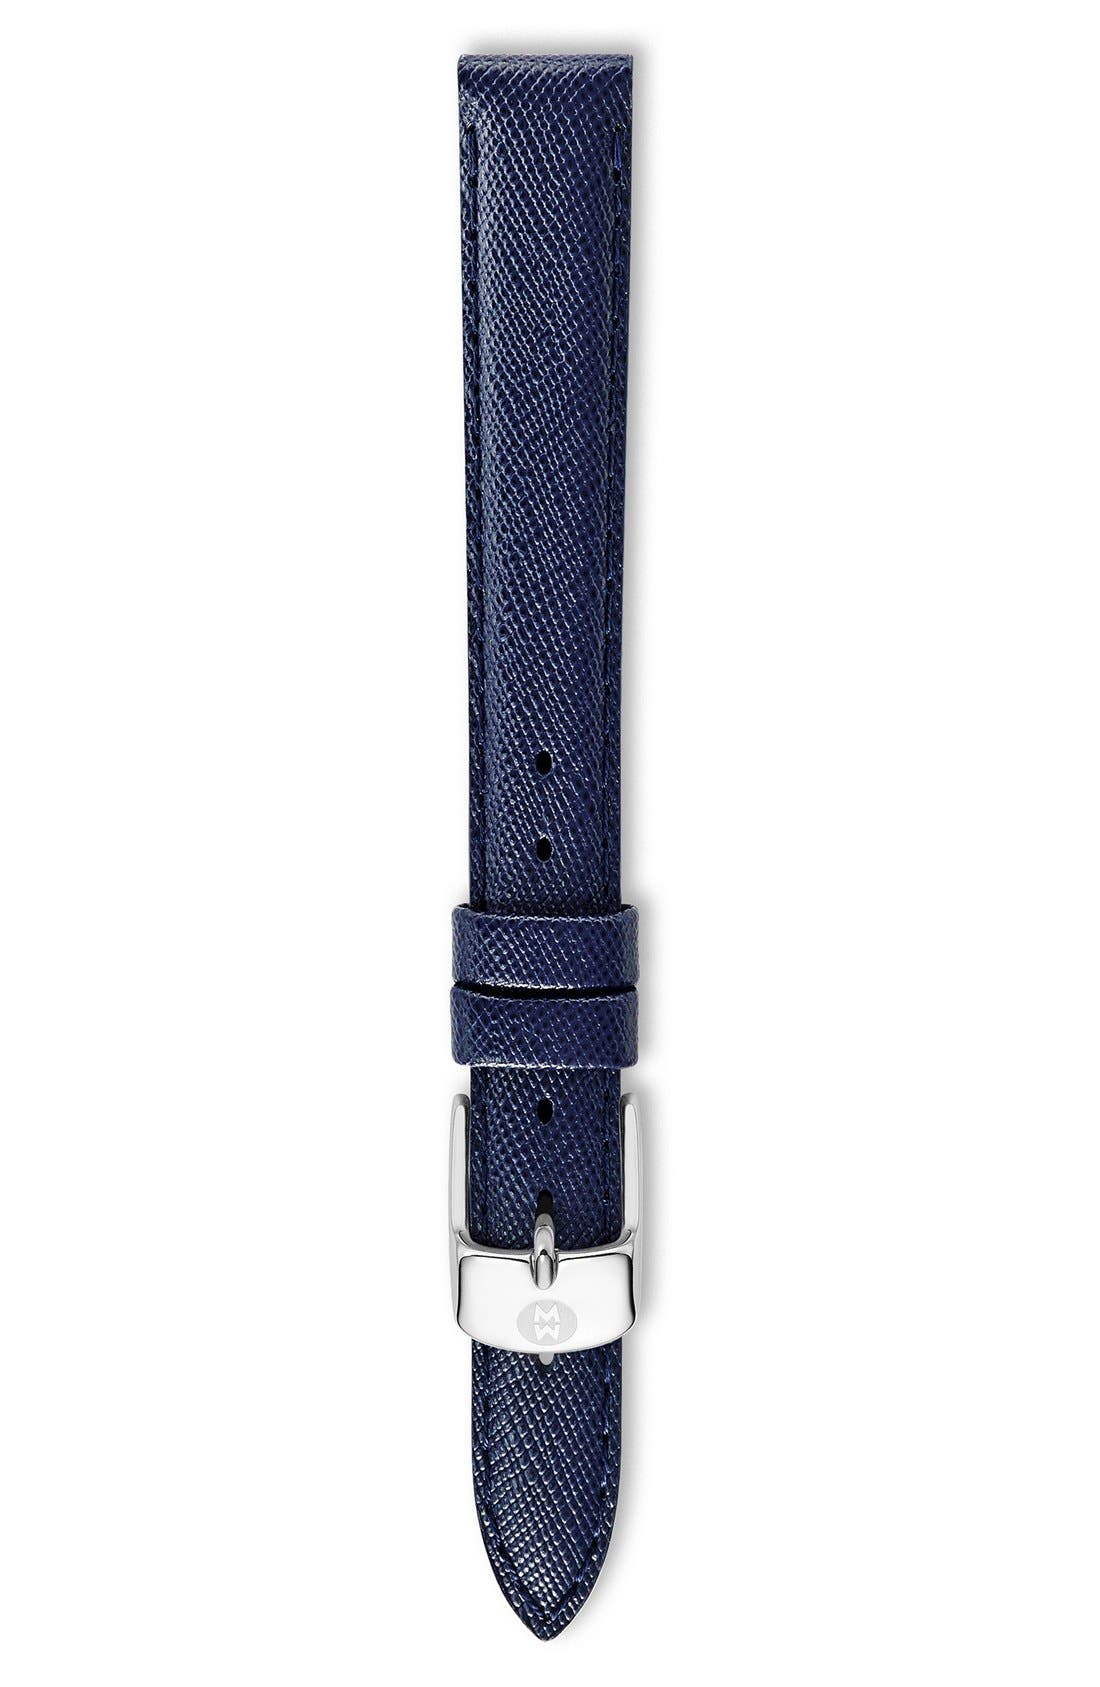 12mm Saffiano Leather Watch Strap,                             Main thumbnail 1, color,                             410